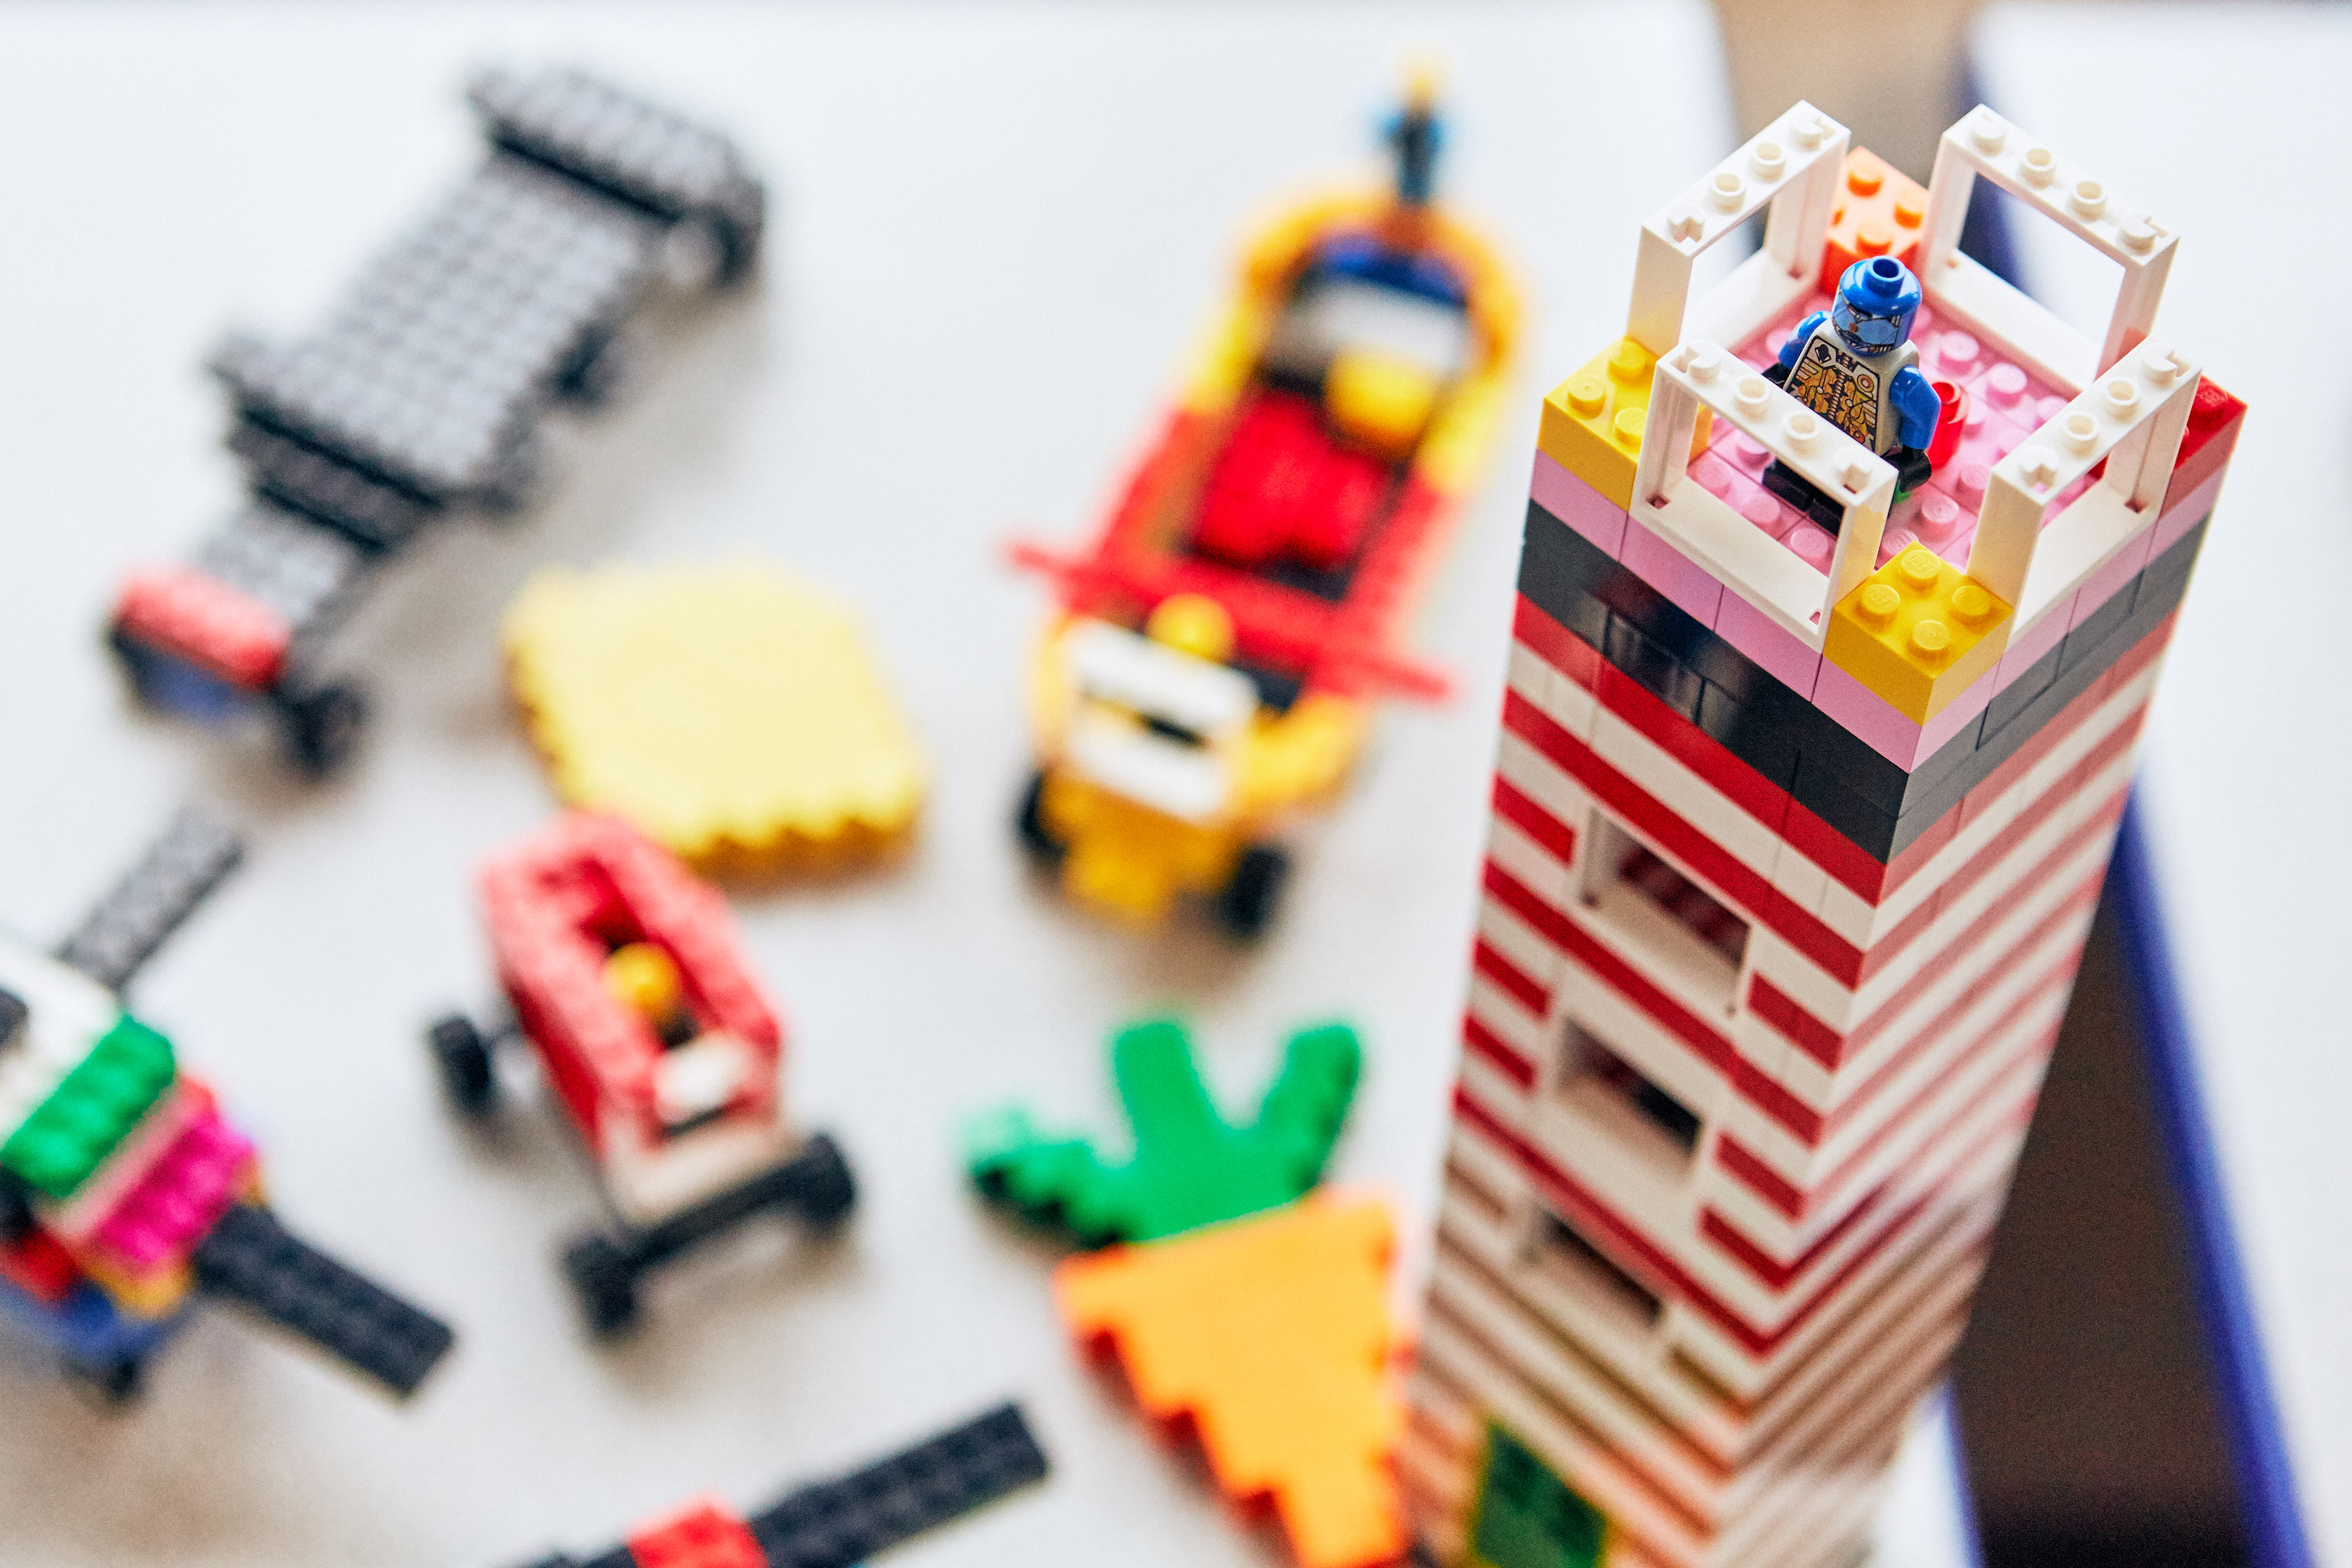 LEGO-Play-Children-Development-Image